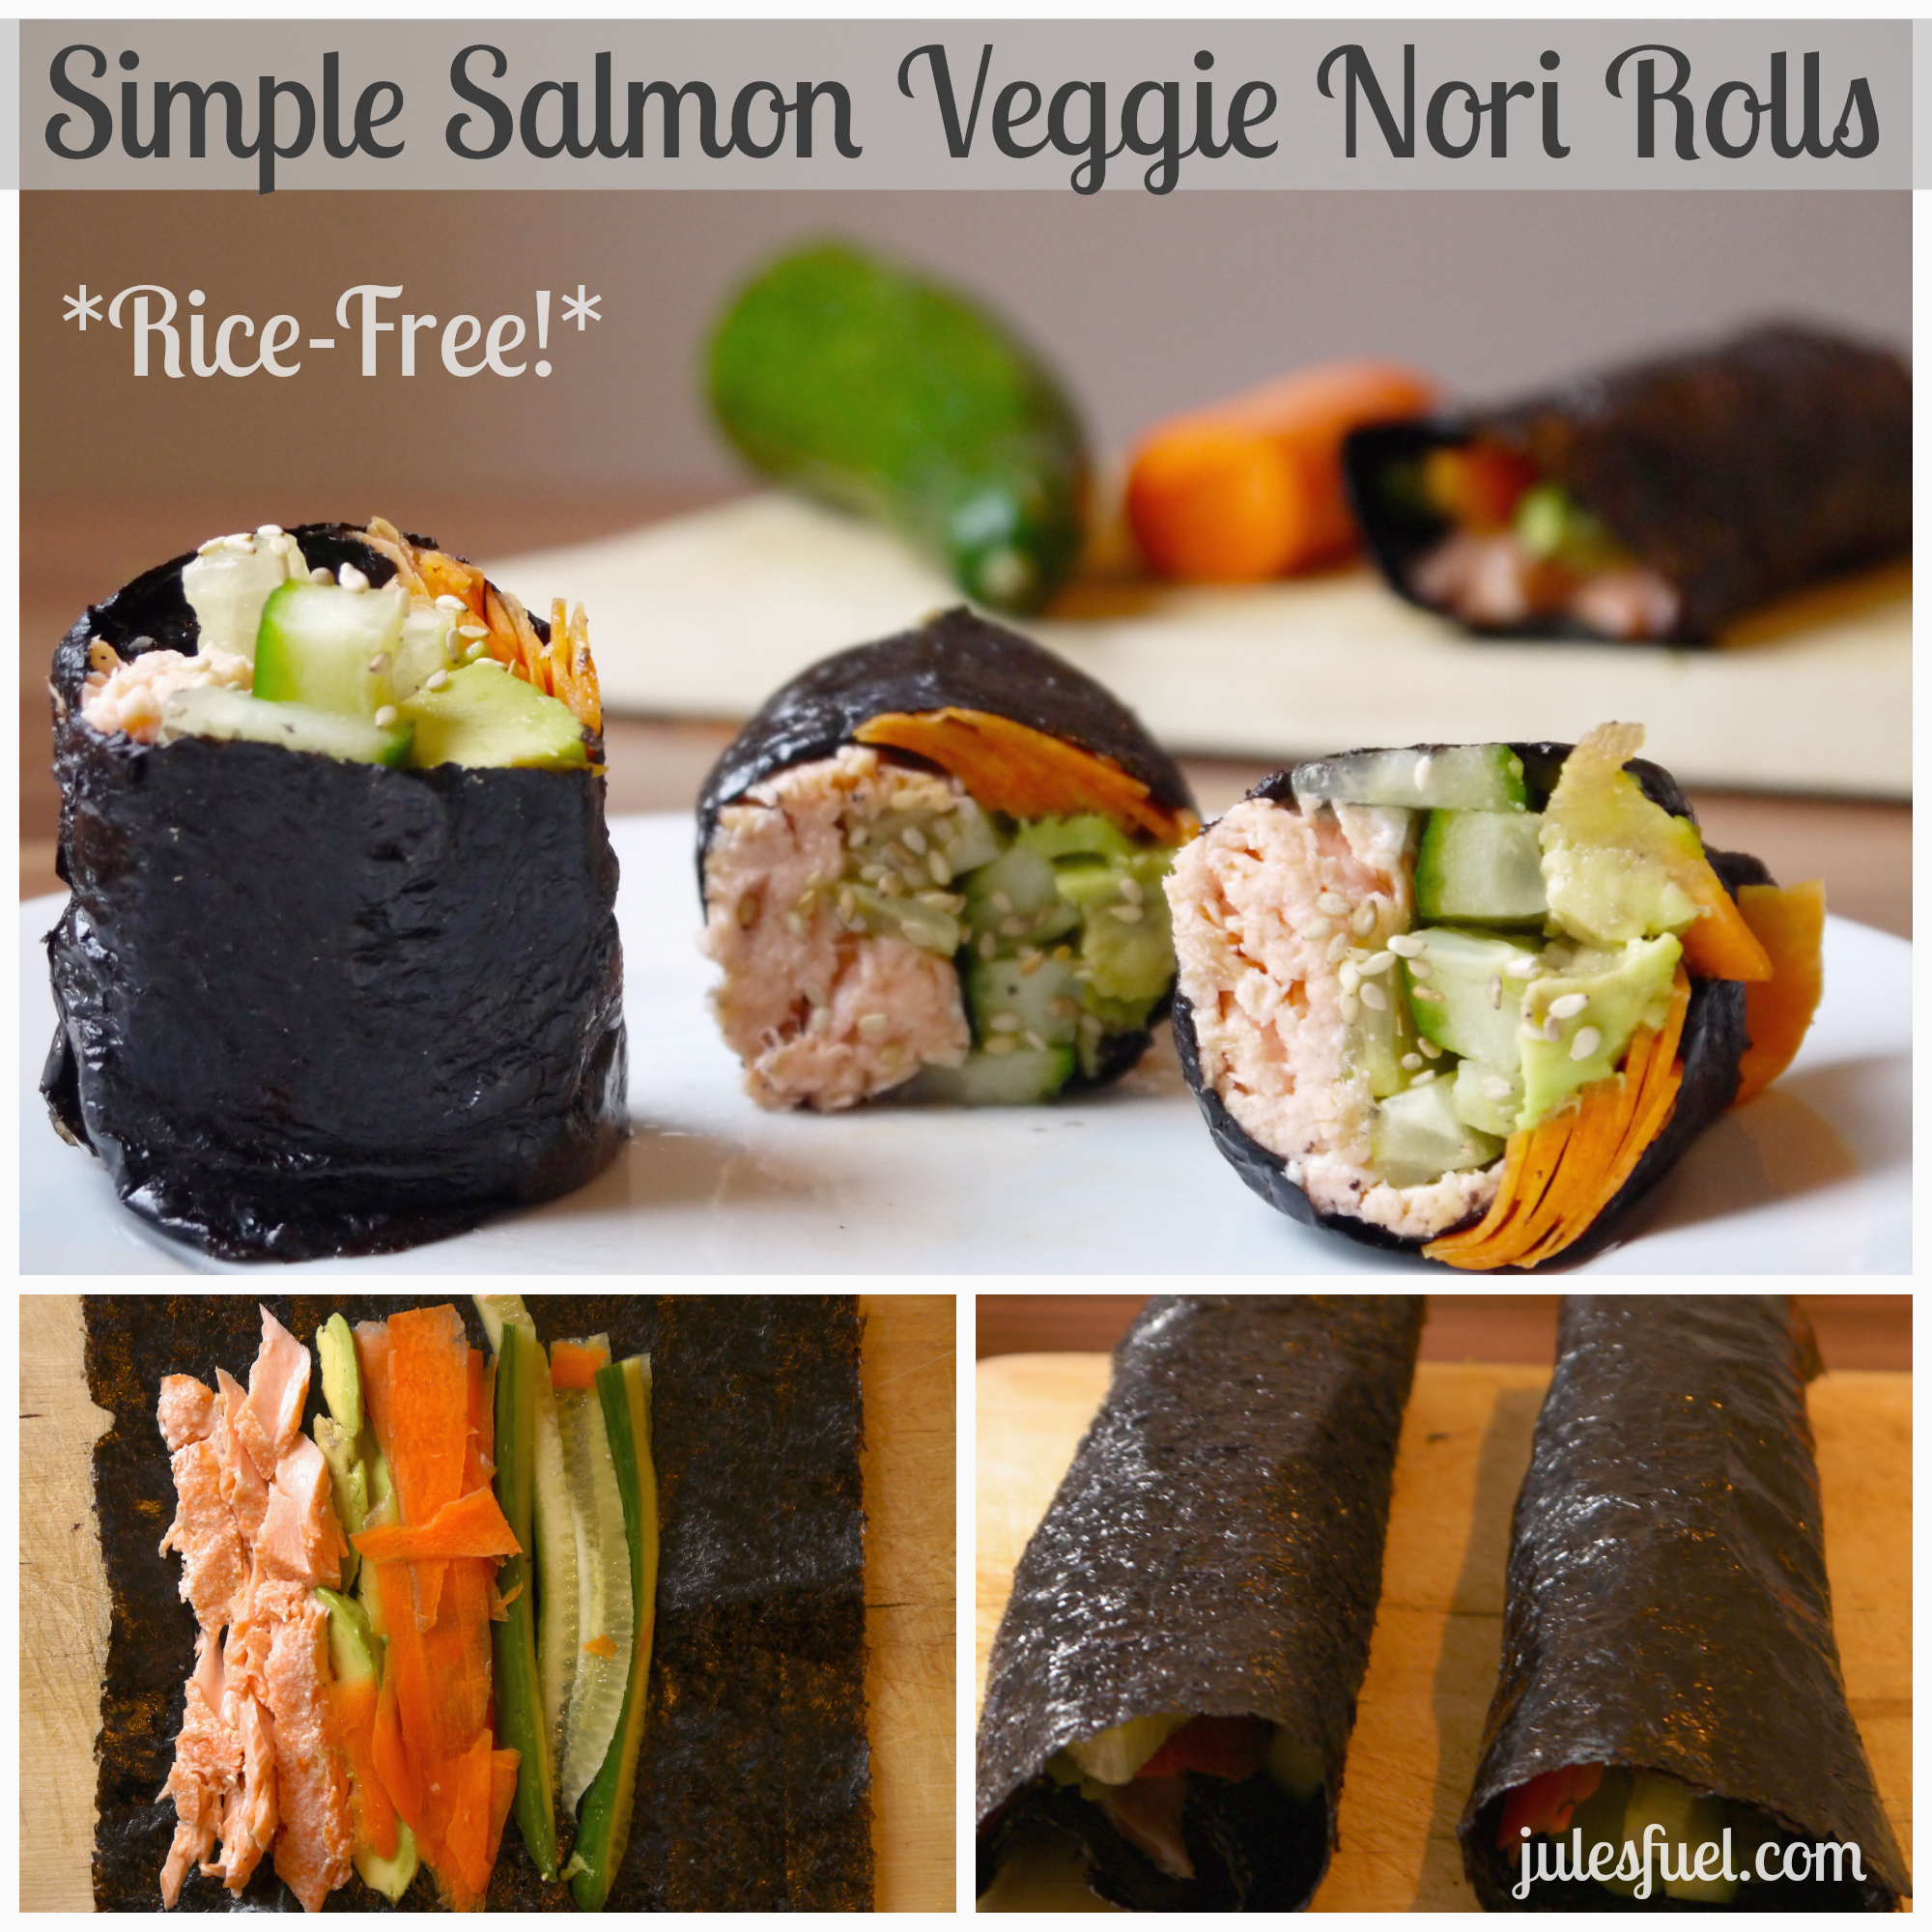 Simple Salmon Veggie Nori Rolls Rice Free Jules Fuel